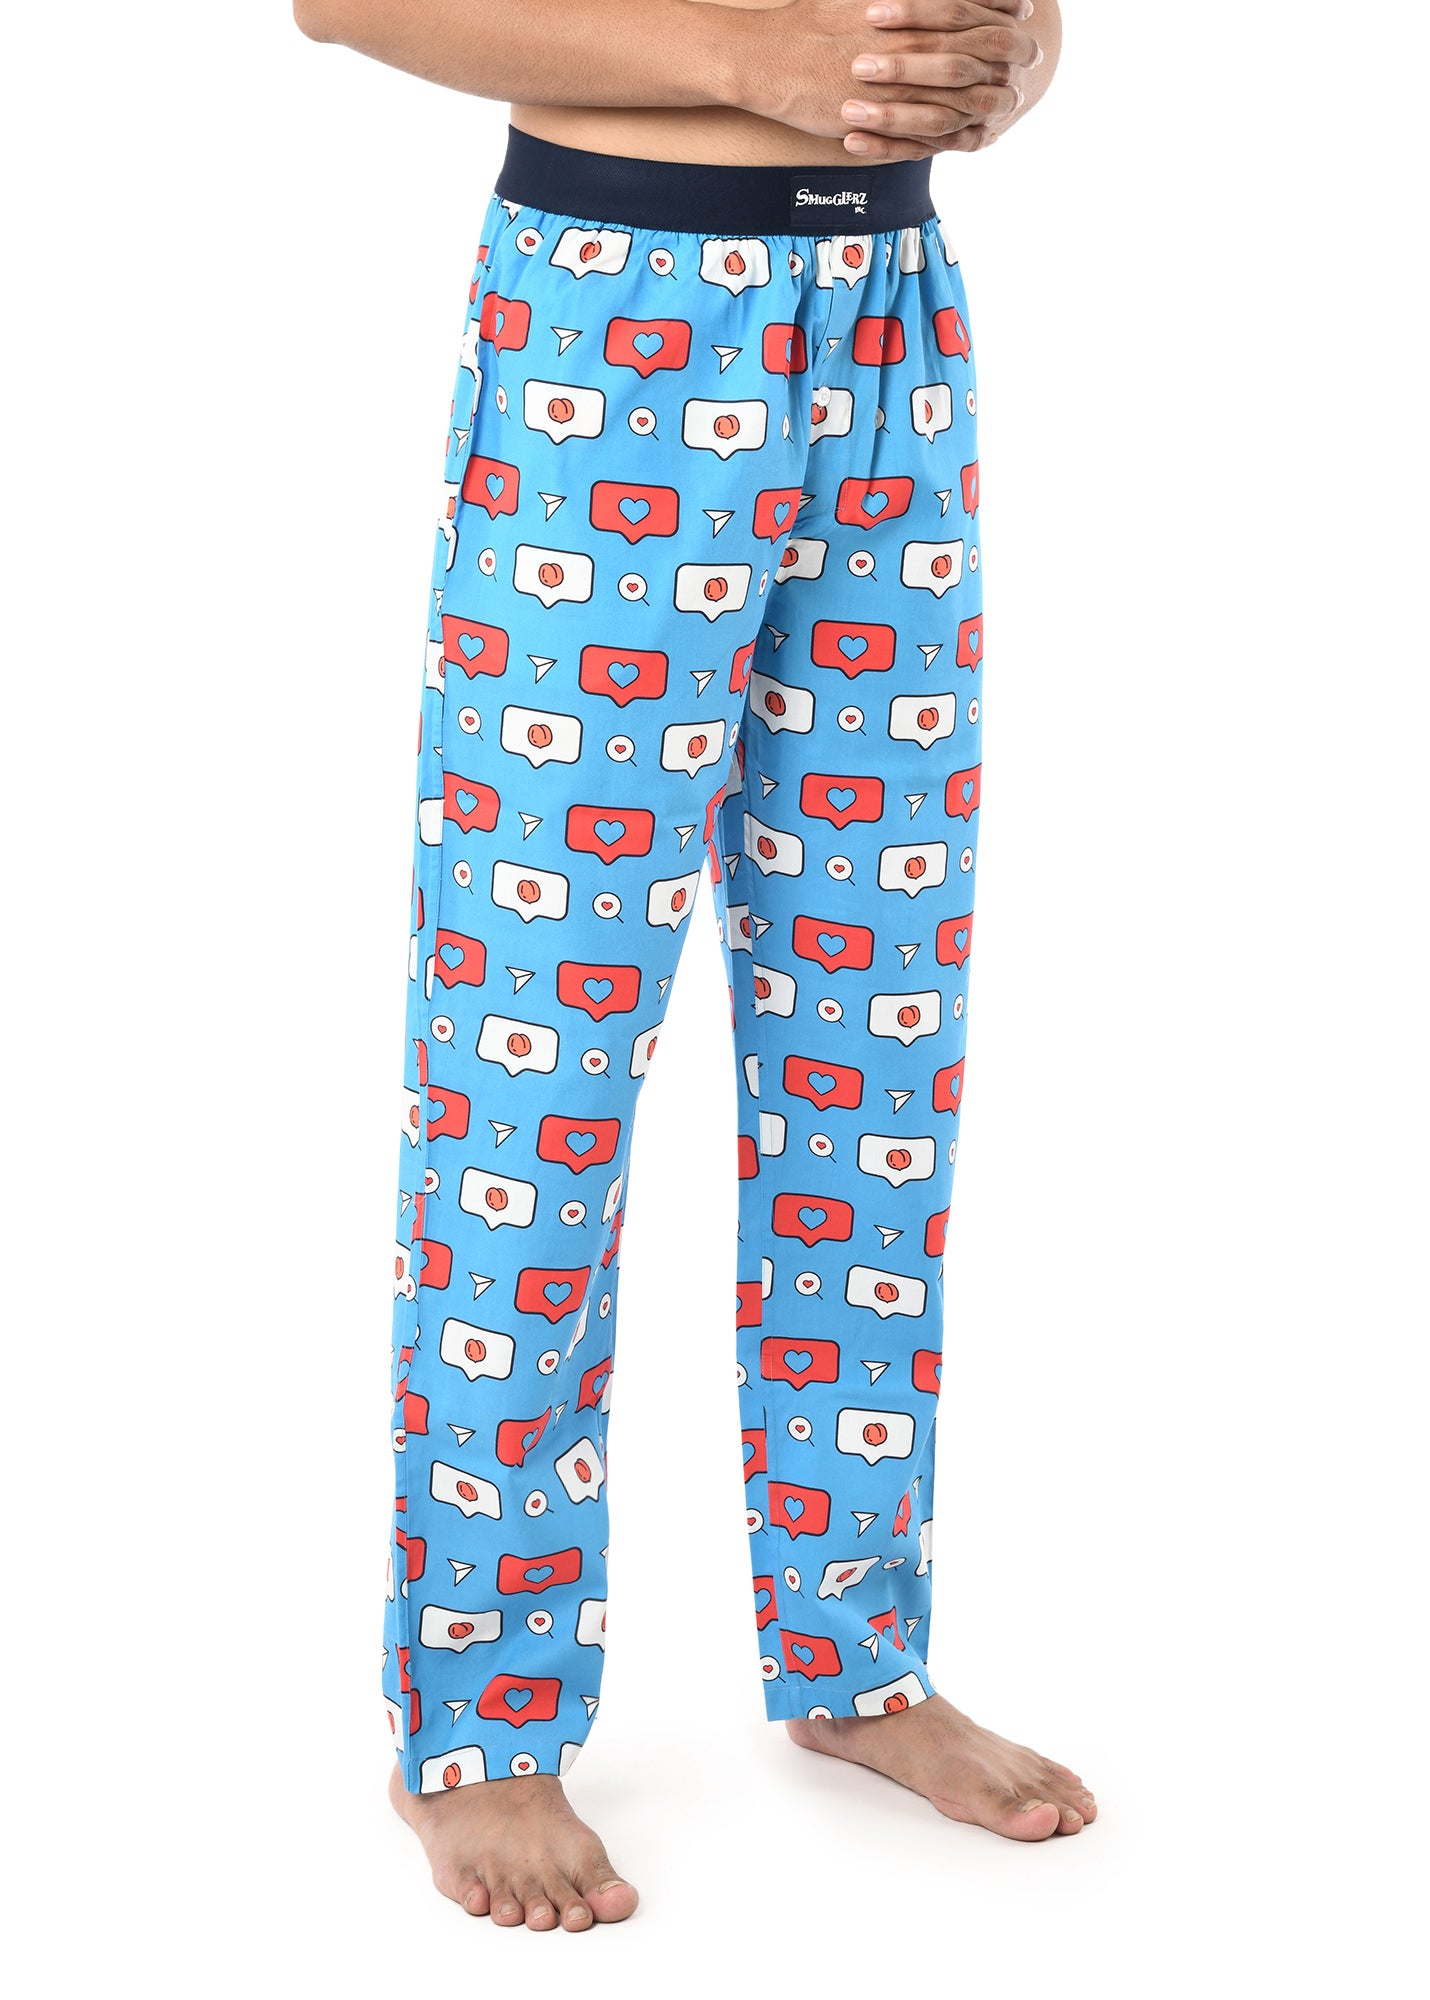 Lets Talk Couple Pajama Gift Pack